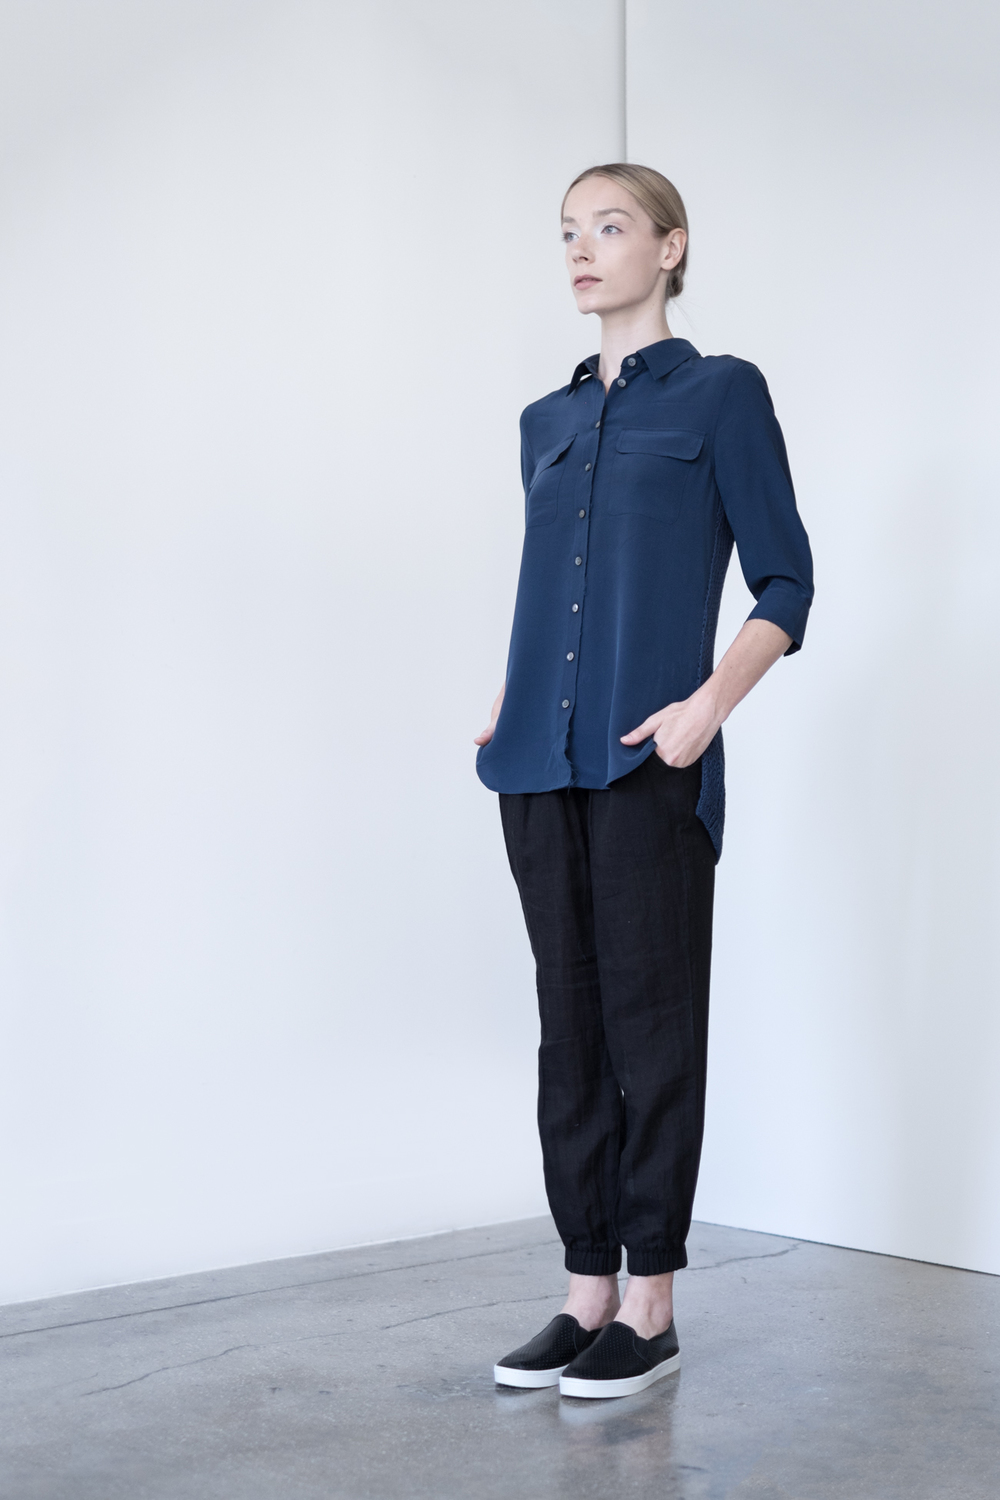 LOOK 46   TOP:   2268  / Navy   -     Jane 3/4 Sleeve silk blouse with sweater back insert.   BOTTOM:   2290  / Noir  -   Jogger pants in 100% Cotton woven dbl. layer gauze.